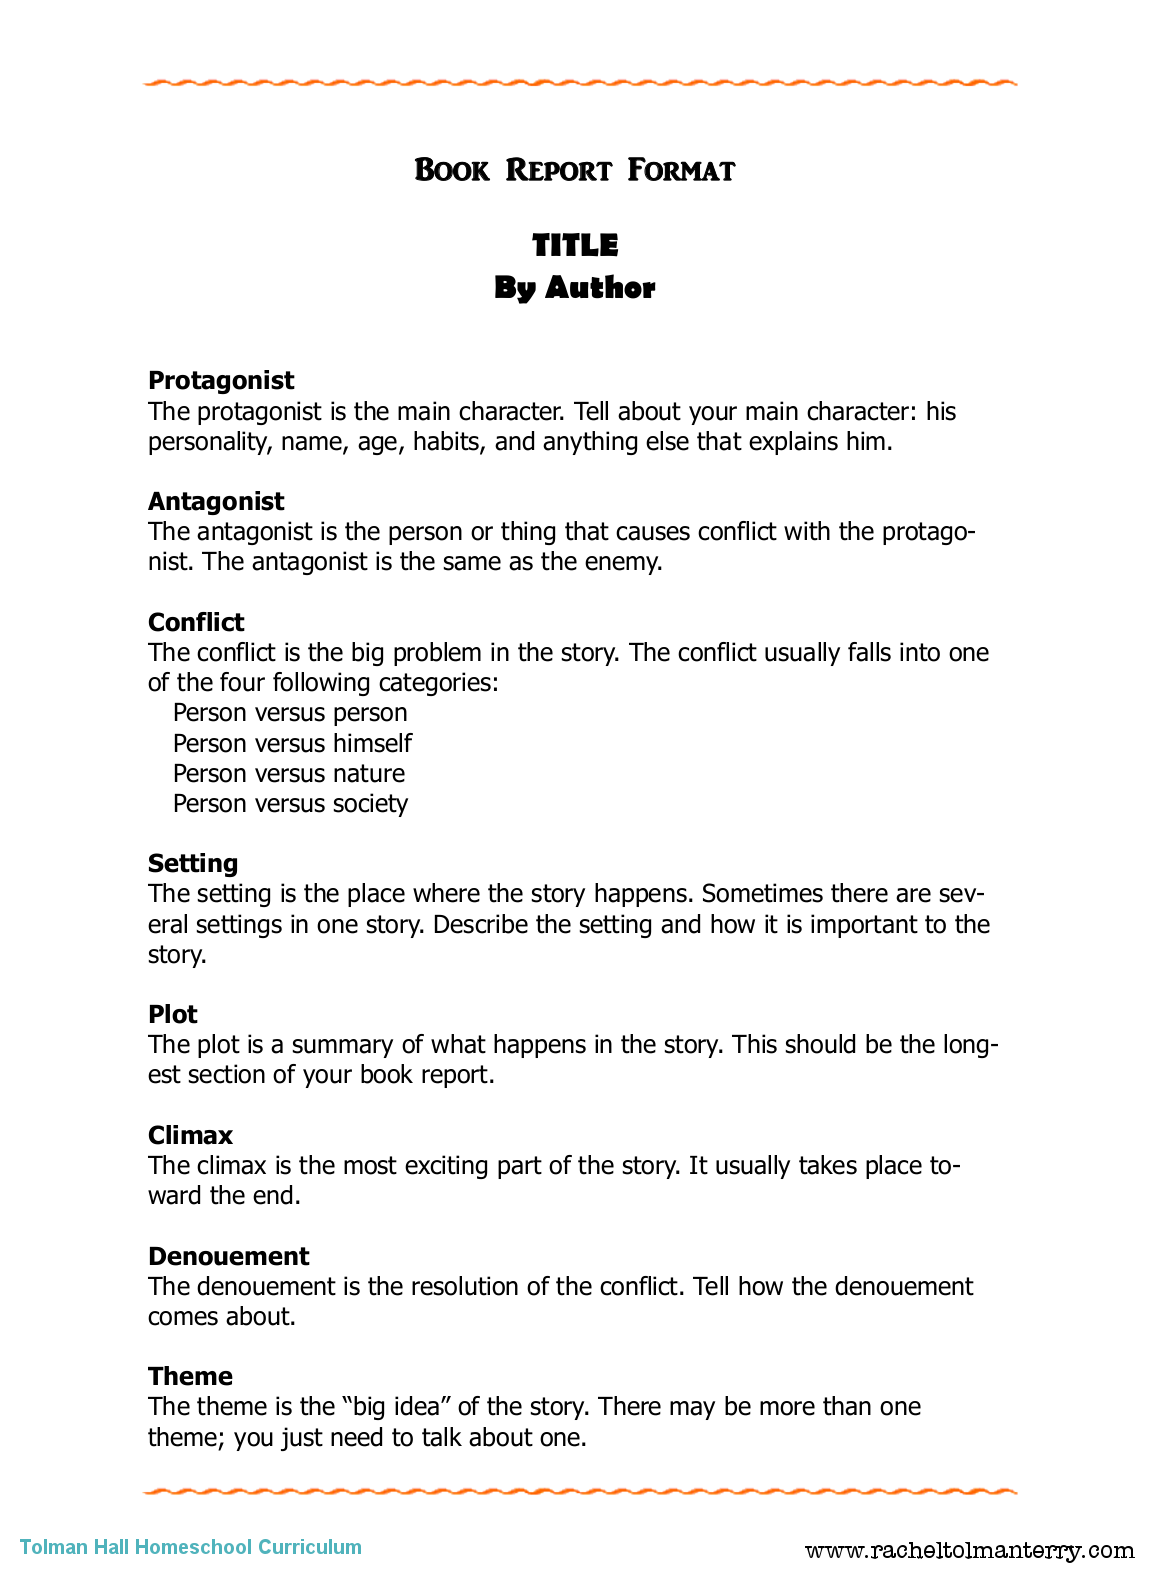 how to write a book review for kids template admission essay  how to write a book review for th grade book review writing how to write a book review for th grade book review writing